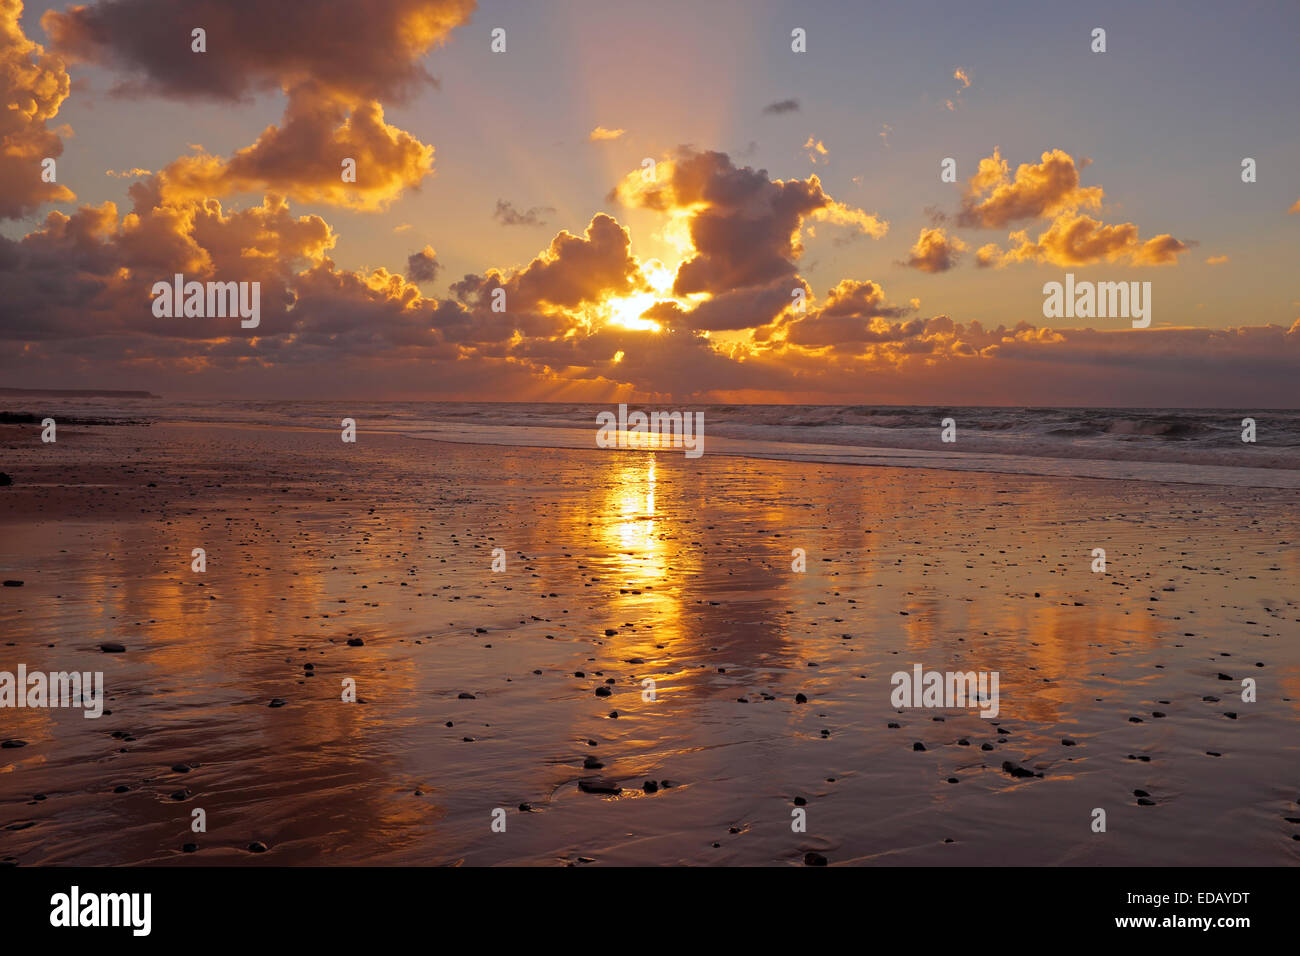 Sunset at the North Sea coast in the Netherlands - Stock Image